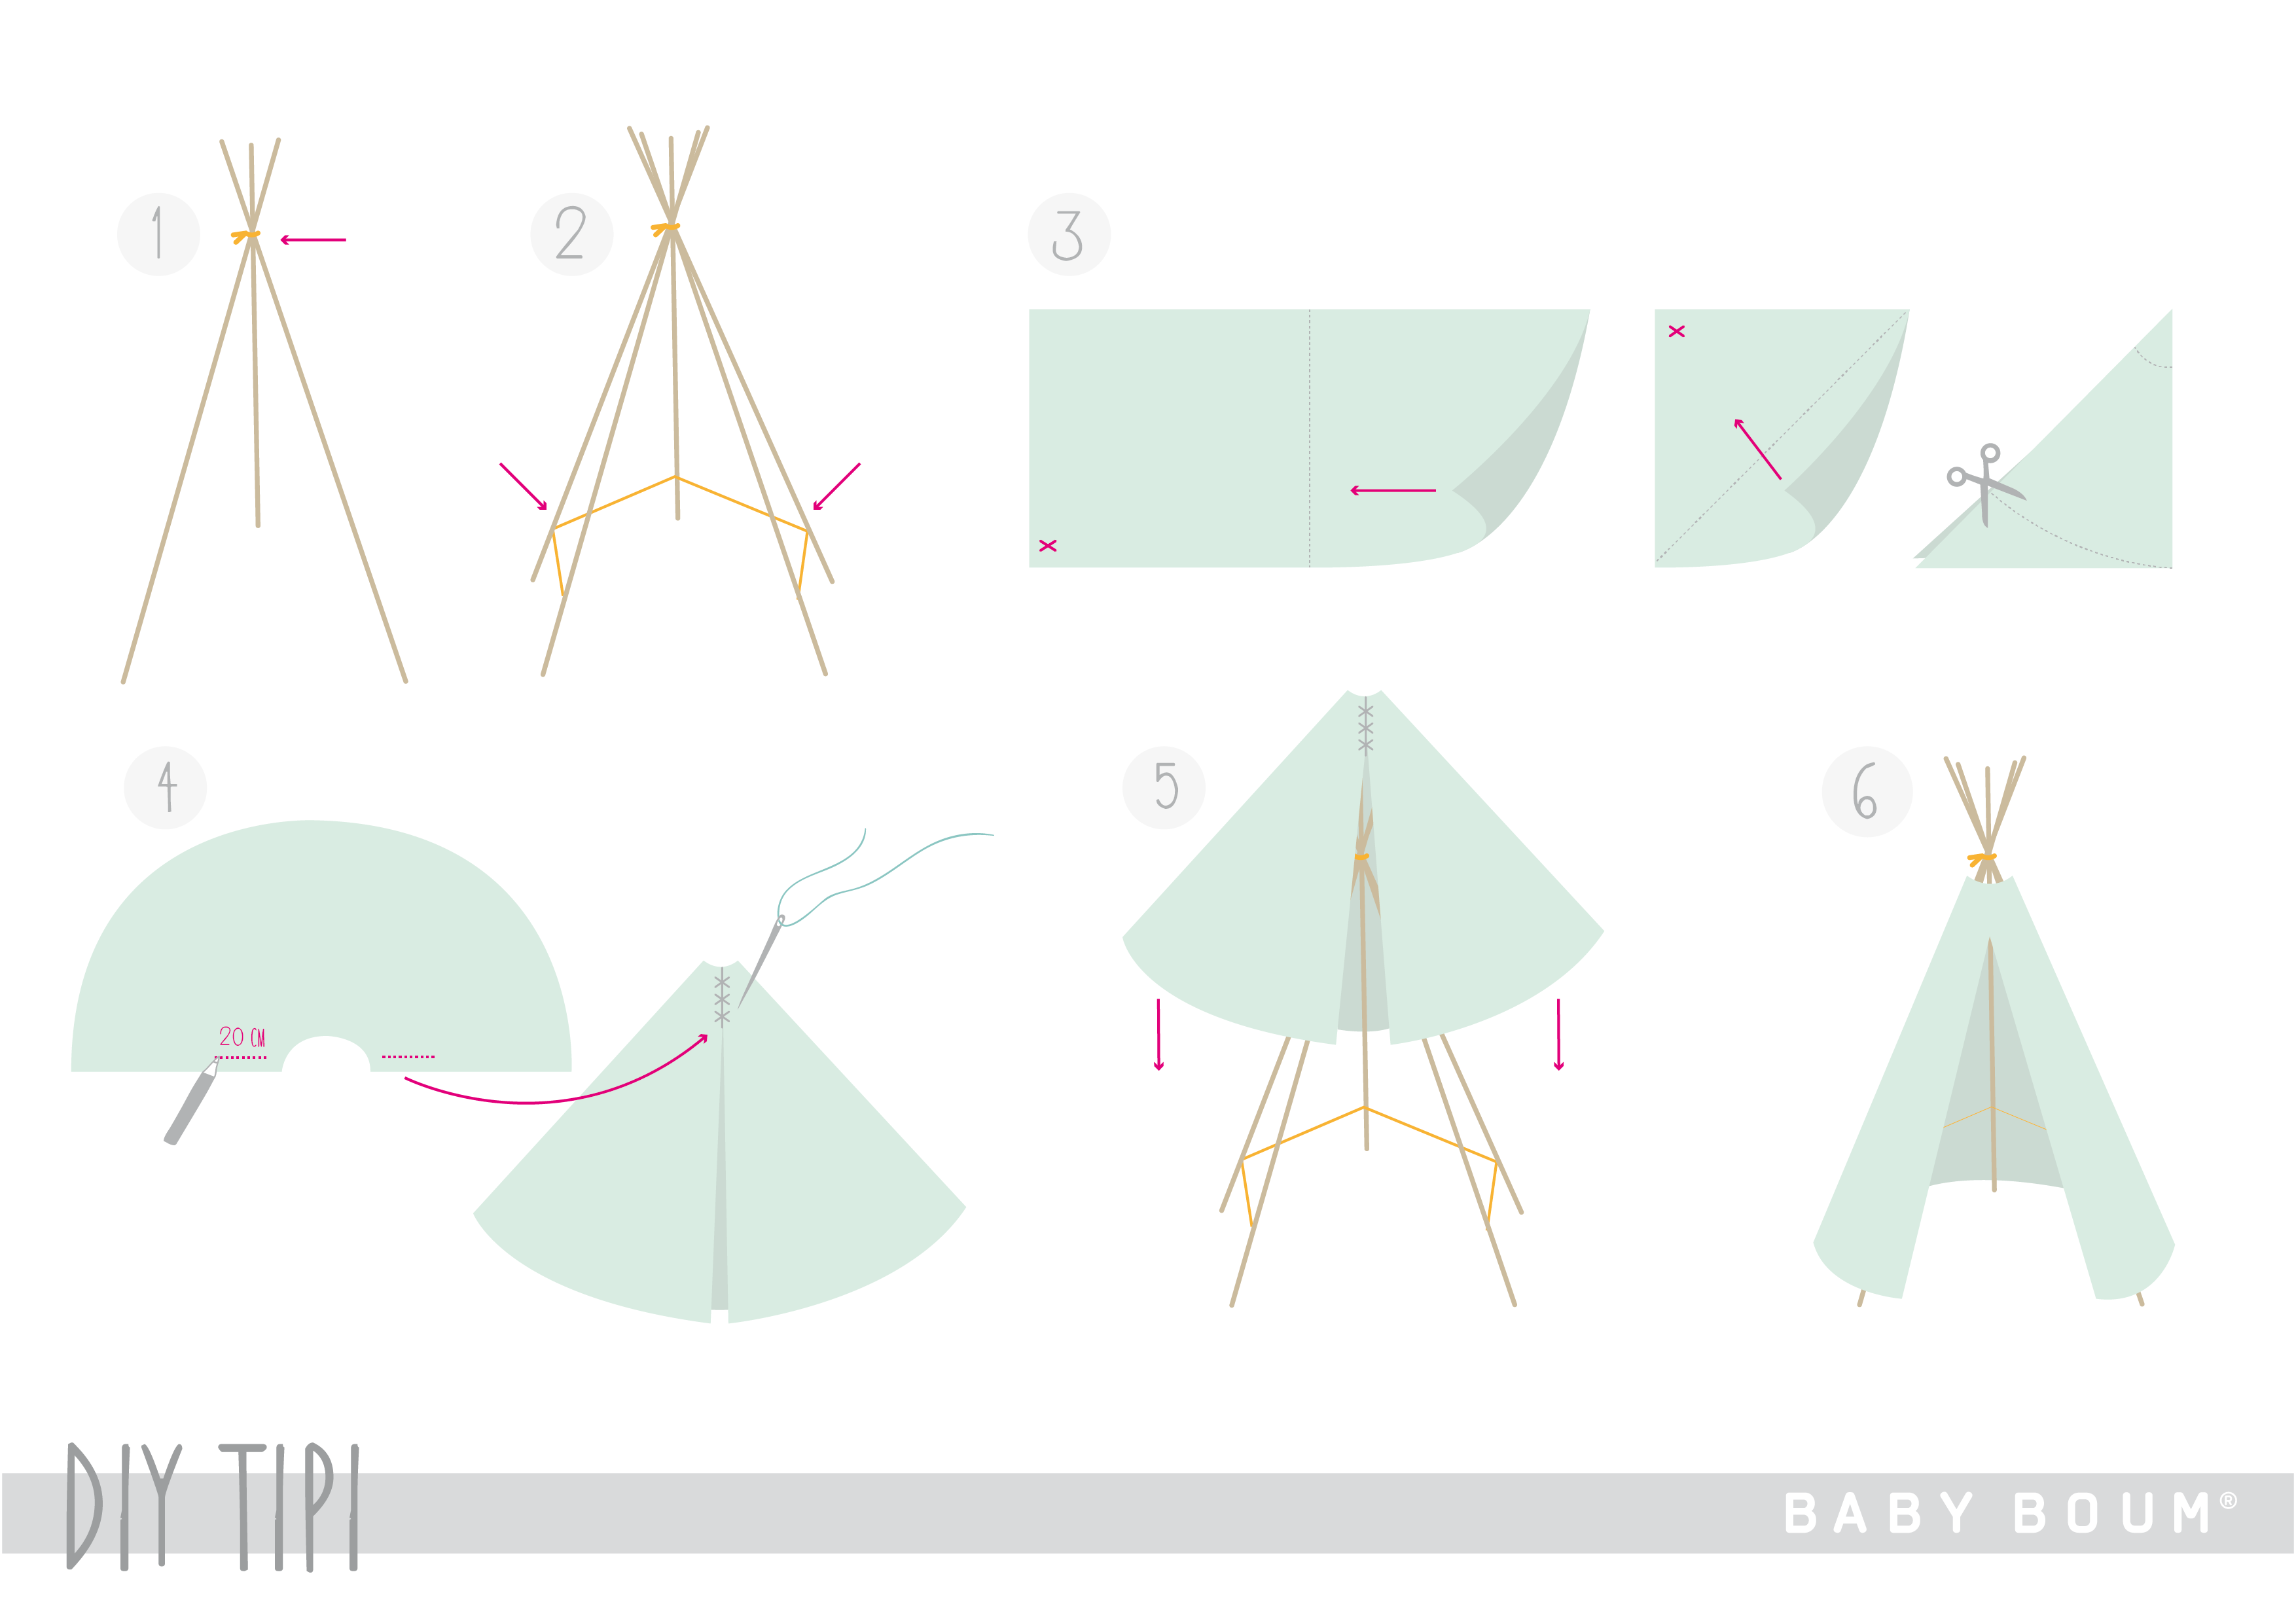 un chouette tipi diy en deux temps trois mouvements blog bemini by baby boum to make. Black Bedroom Furniture Sets. Home Design Ideas